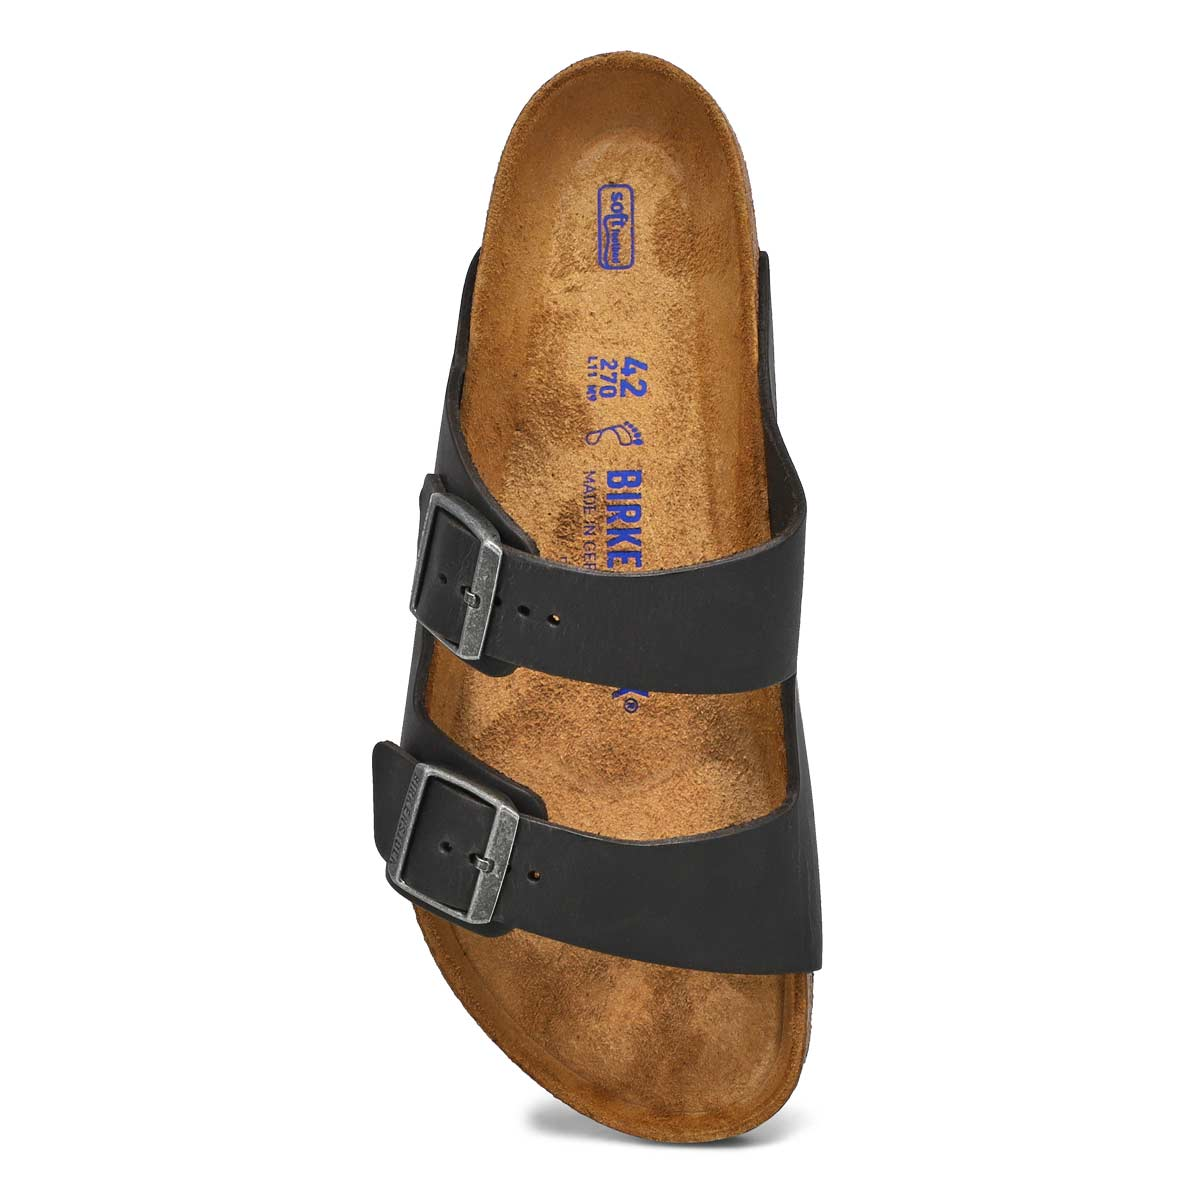 Mns Arizona black 2 strap sandal SF